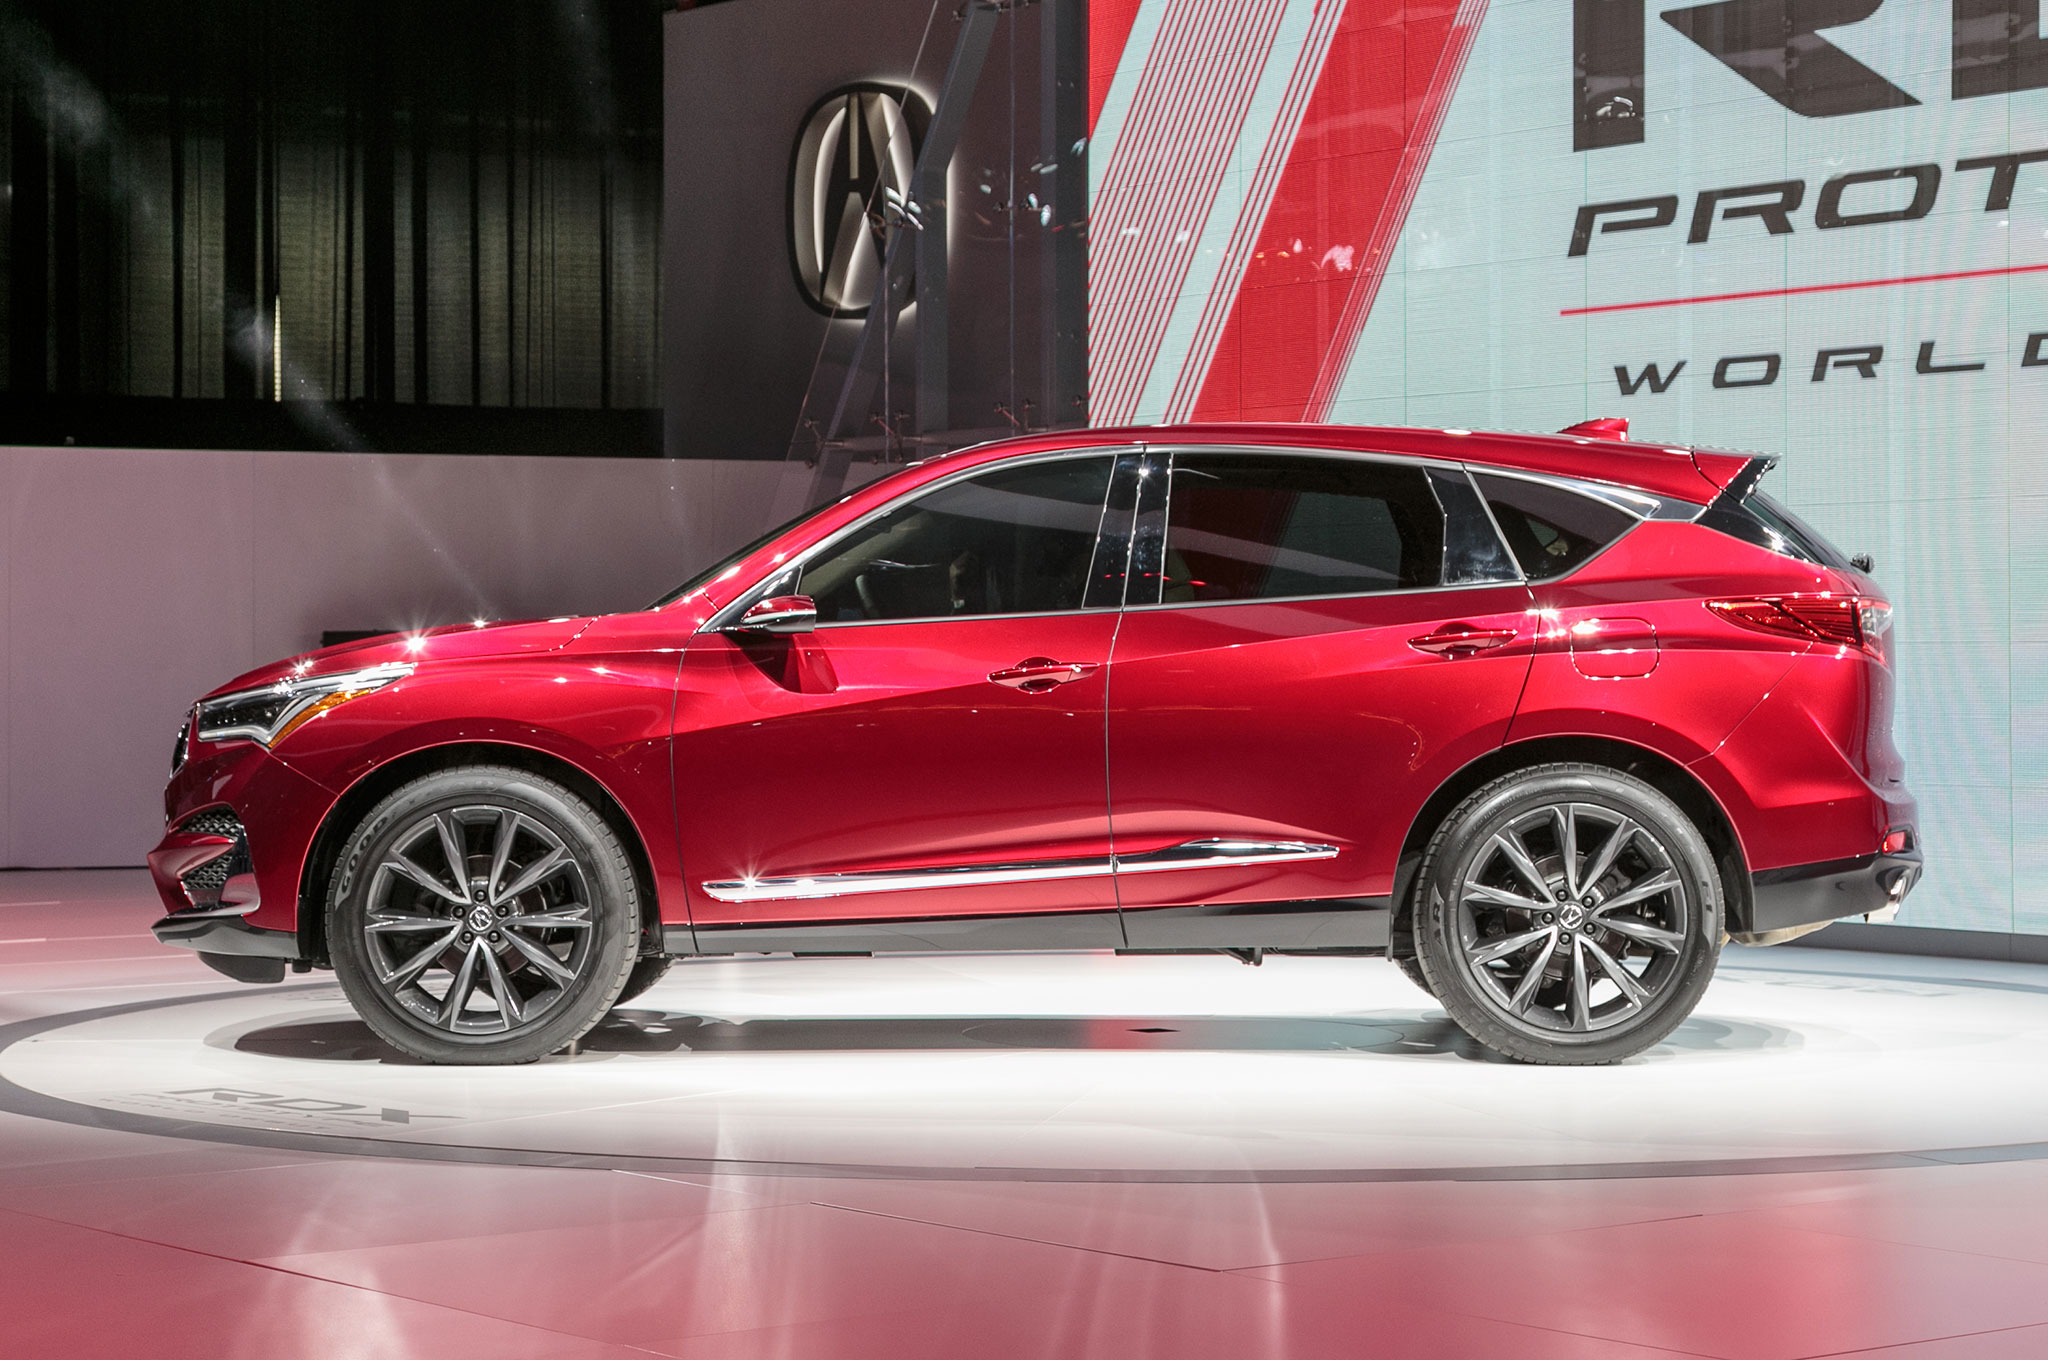 2019 Acura Rdx Prototype Preps For More Acronyms Automobile Magazine